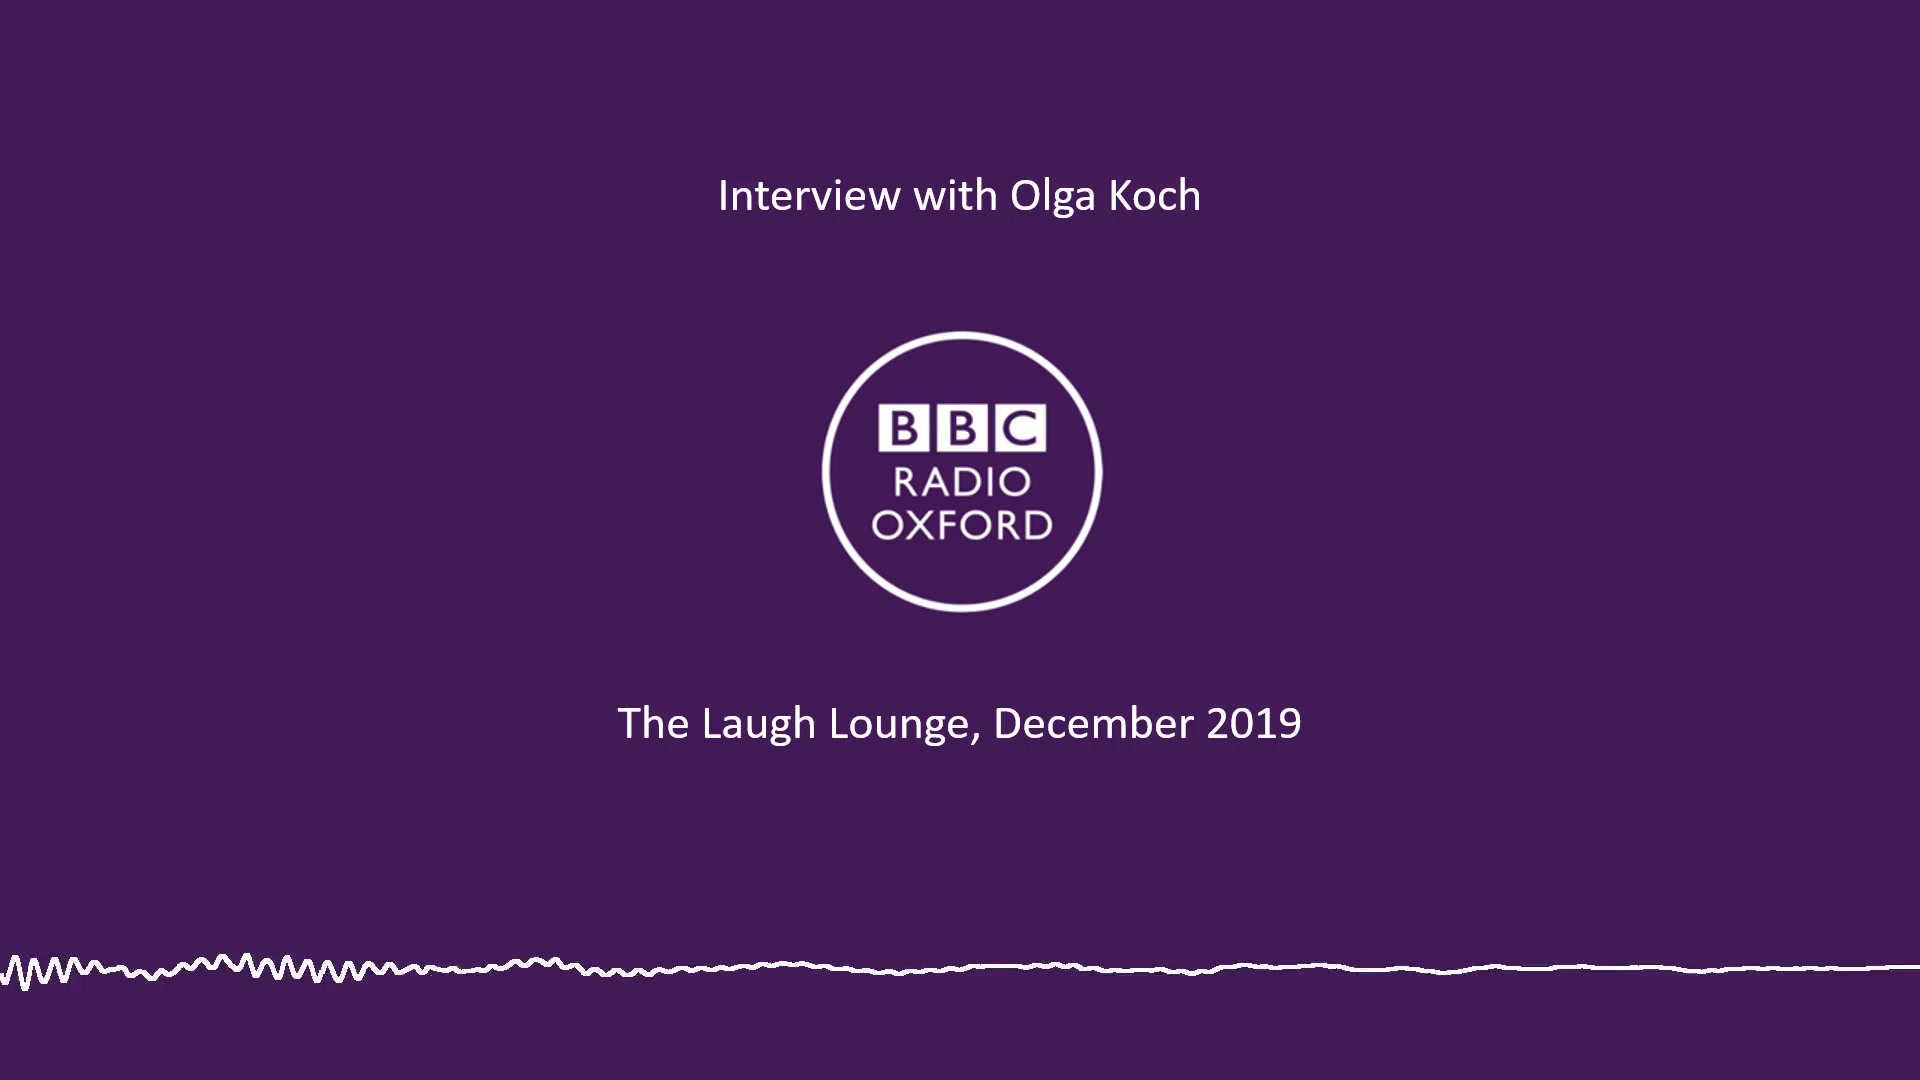 Interview with Olga Koch